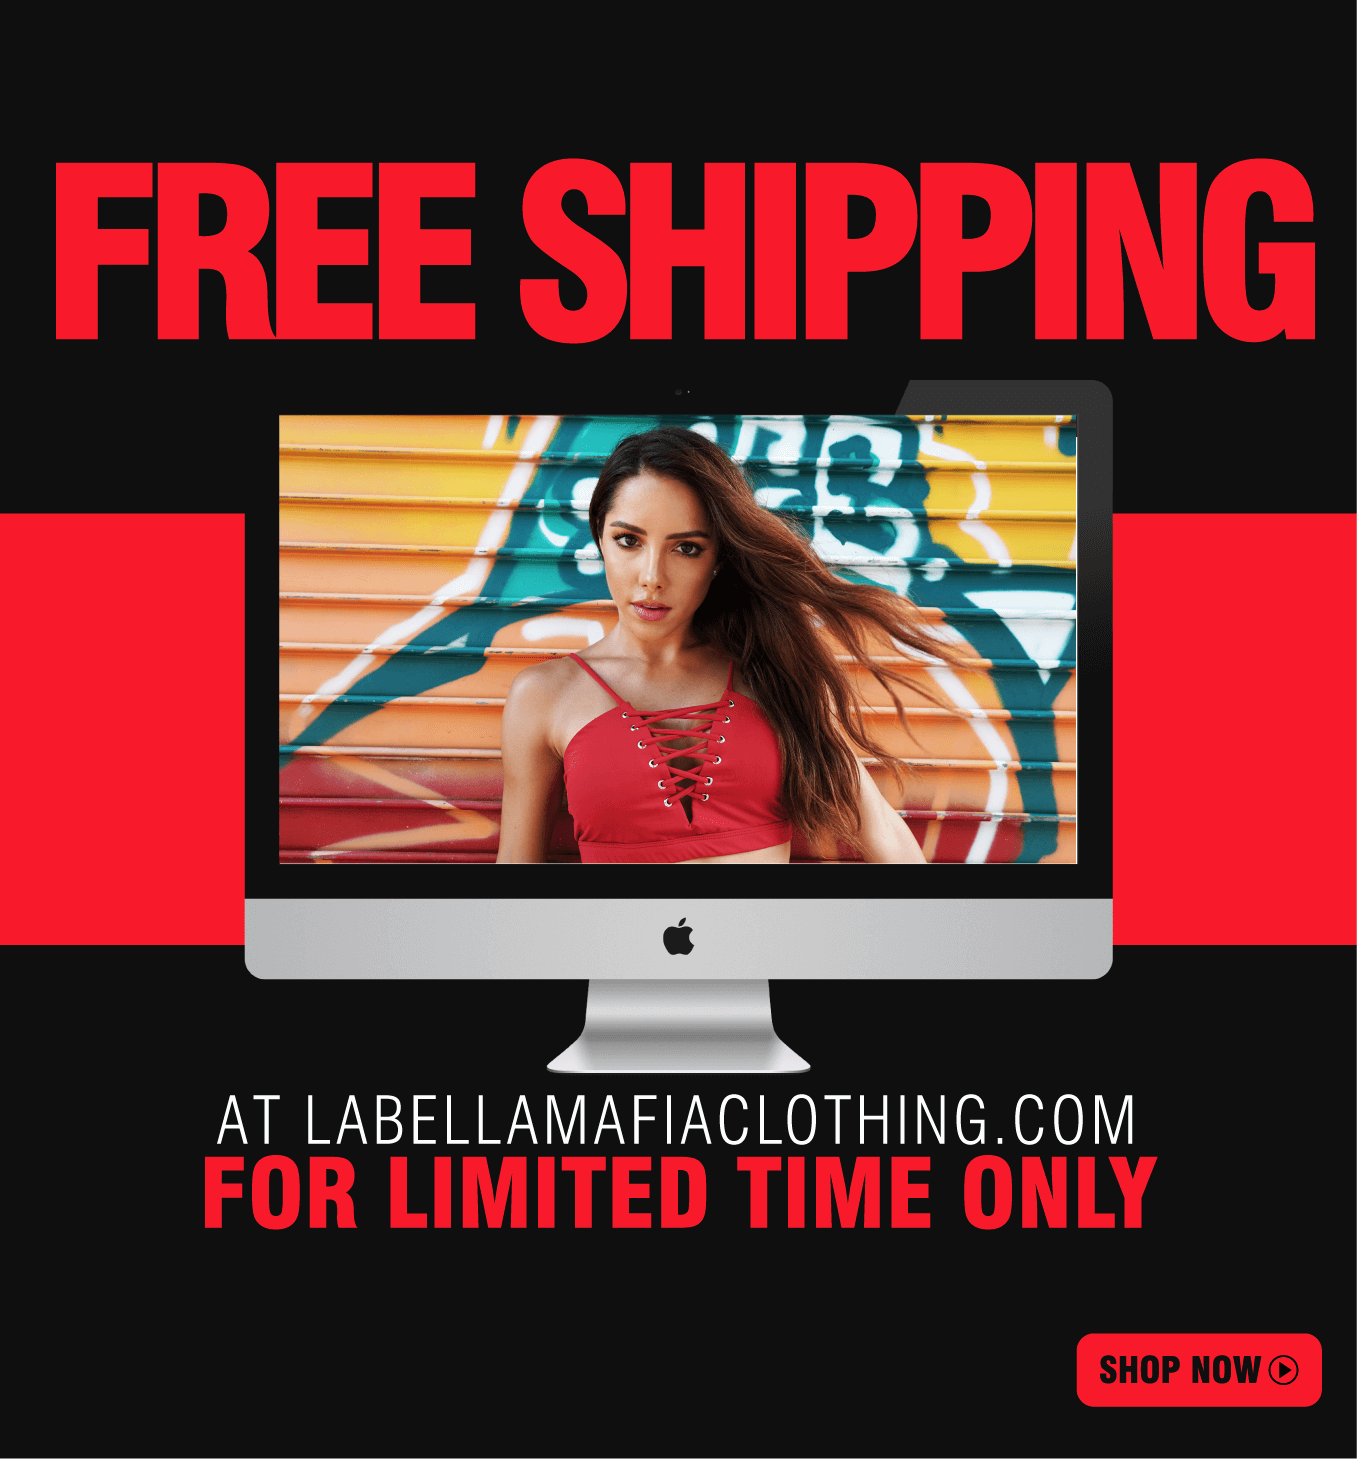 Labellamafia Clothing